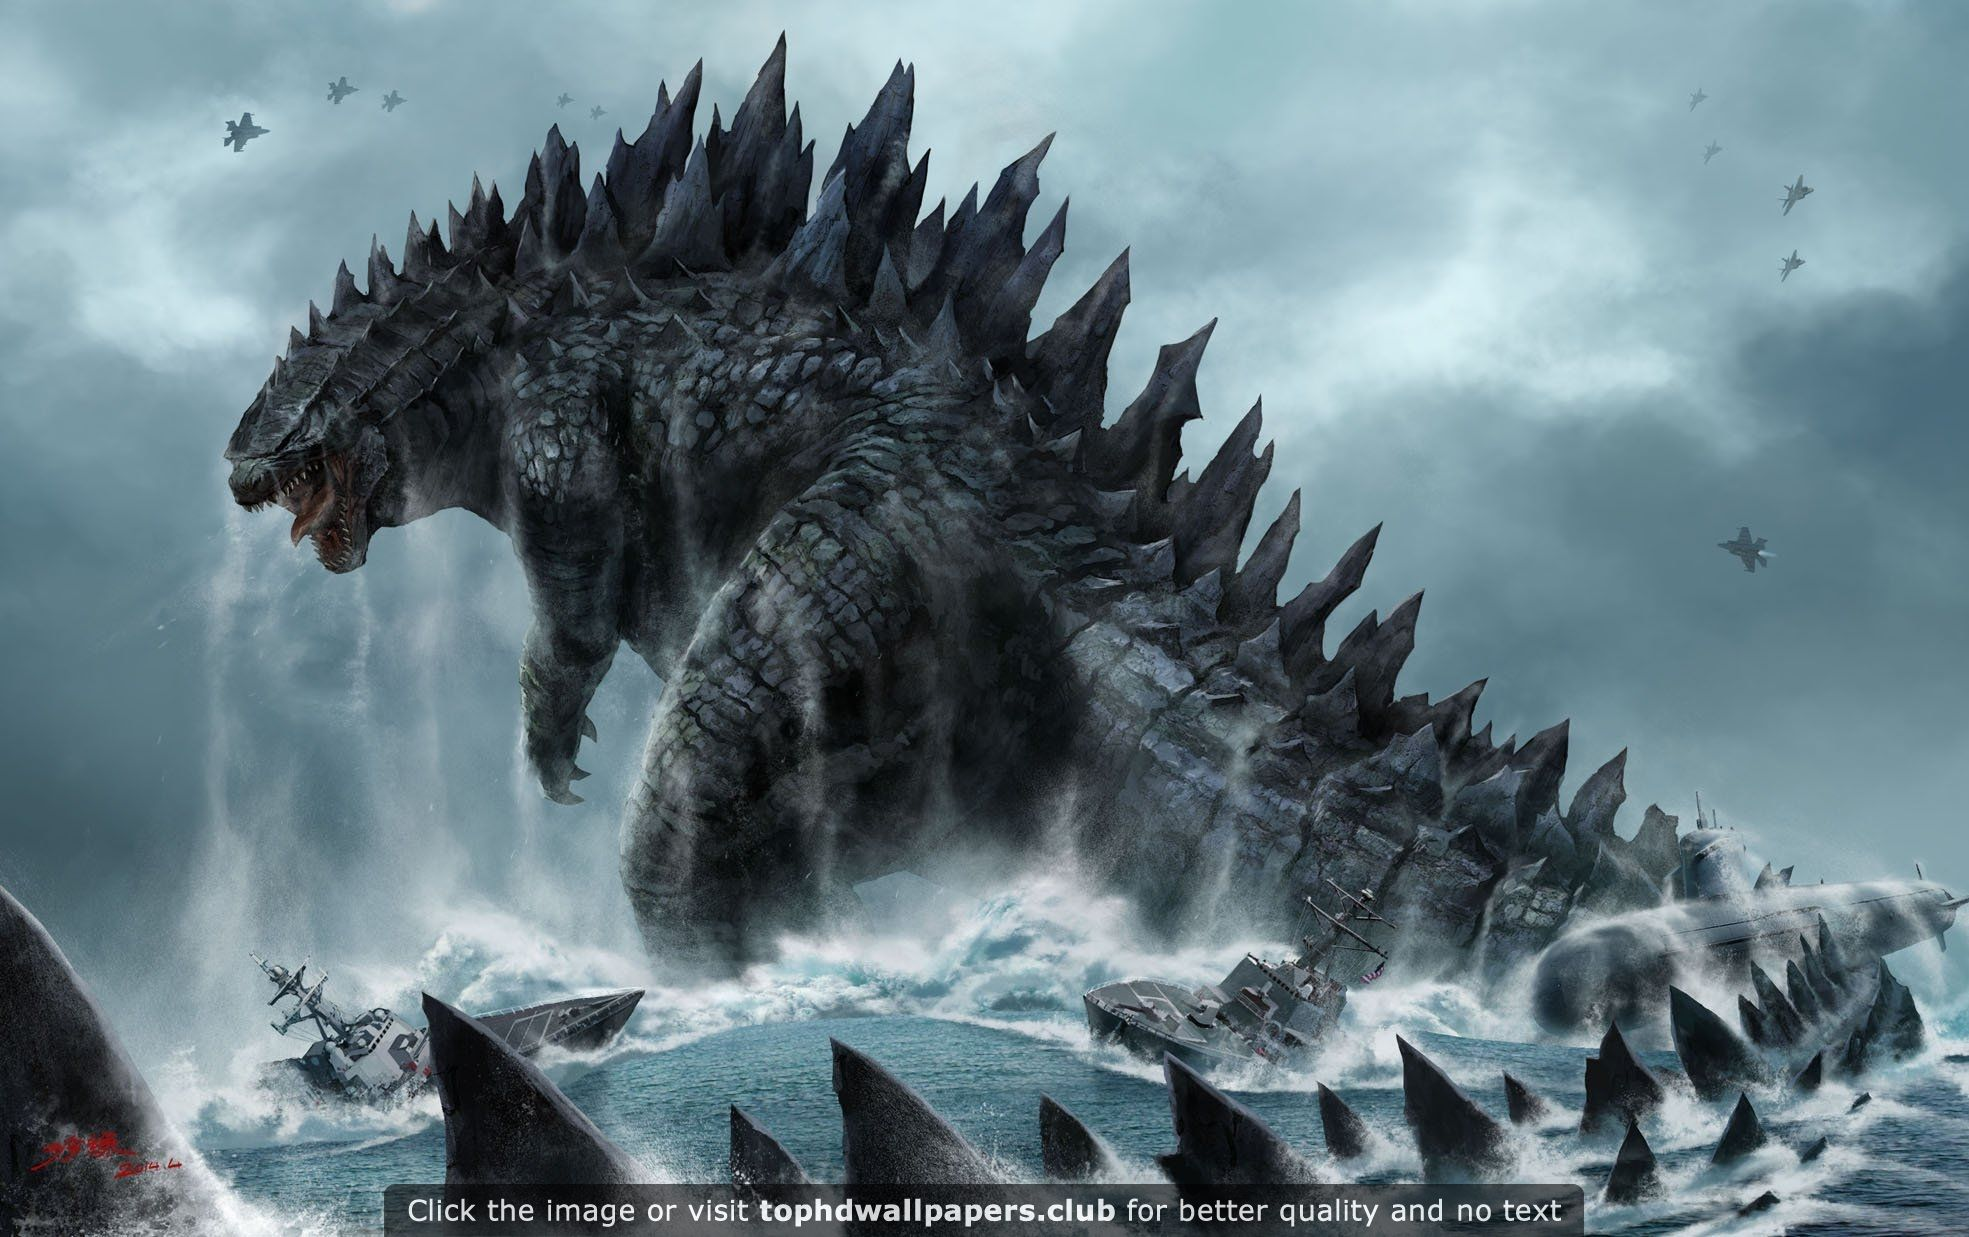 Godzilla for Your Desktop 4K or HD wallpaper for your PC, Mac or Mobile device